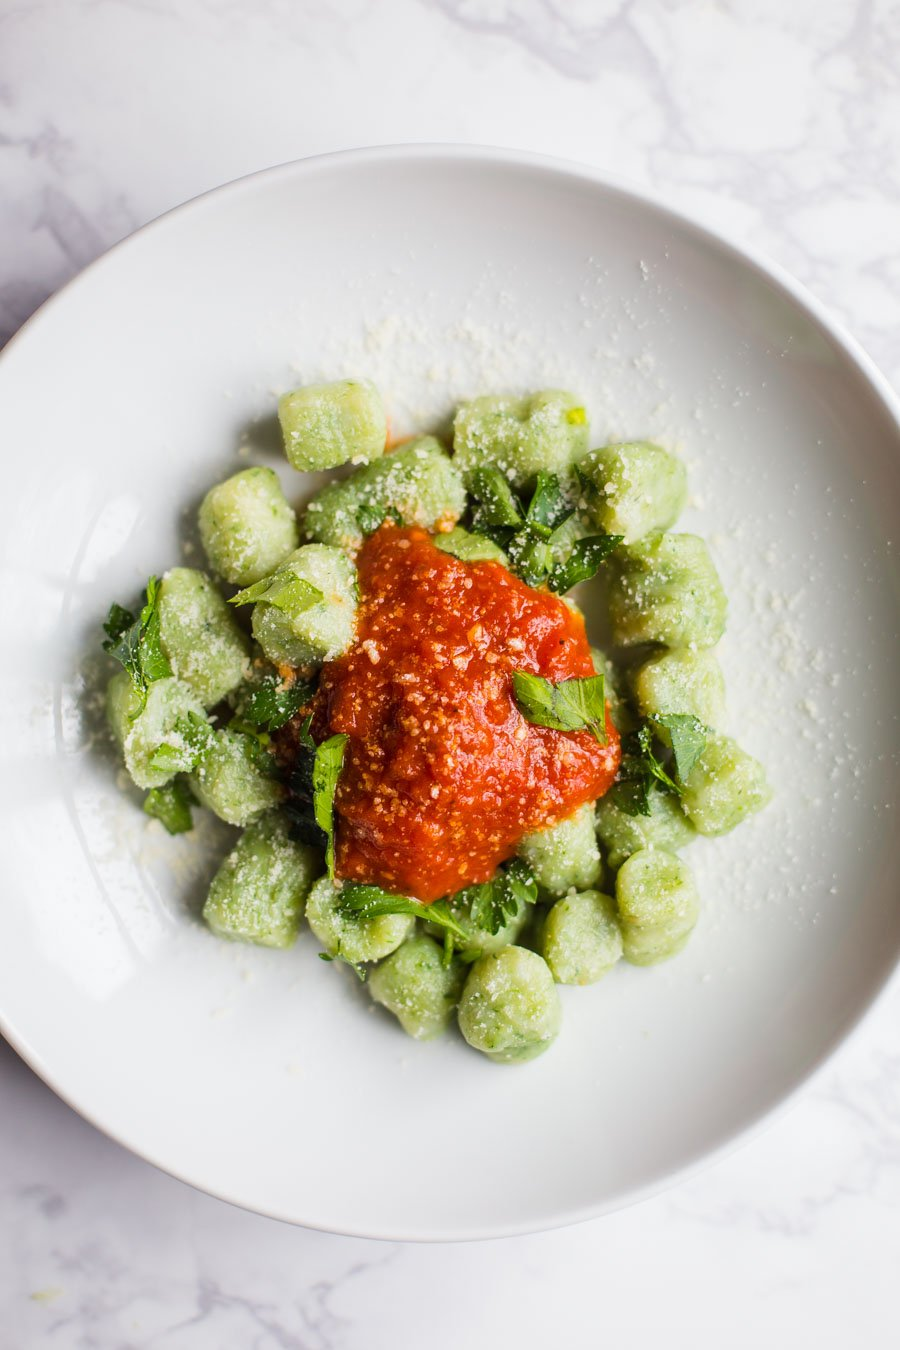 Spinach Gnocchi- this gnocchi is completely VEGAN, super easy to make, and perfect for make ahead meals. It's something the whole family will love!